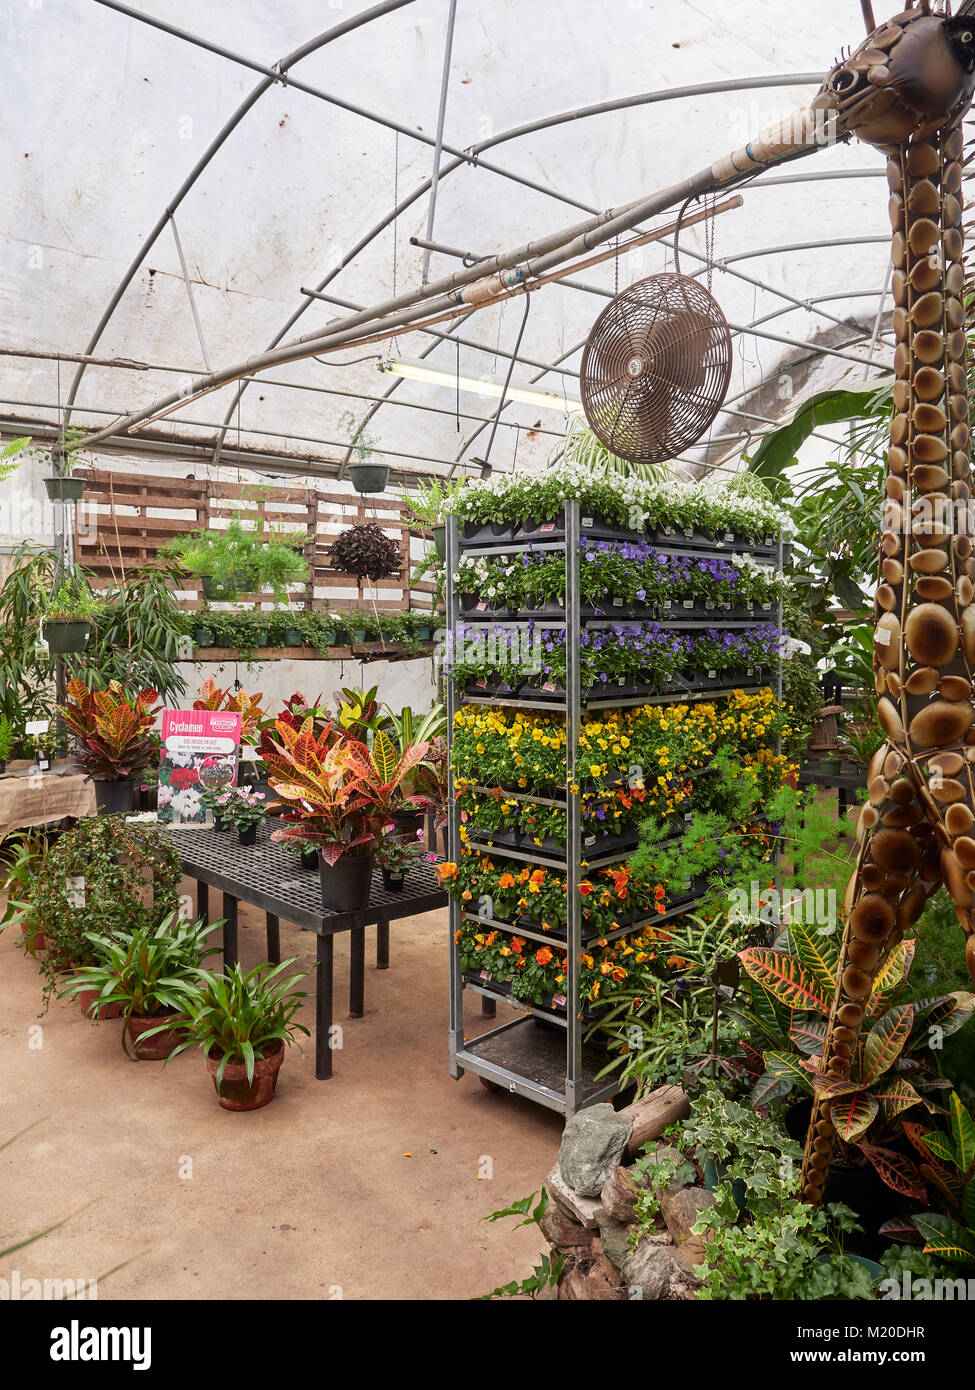 Variety of plants and flowers including pansies, for sale in a retail garden nursery hot house in Auburn Alabama, - Stock Image